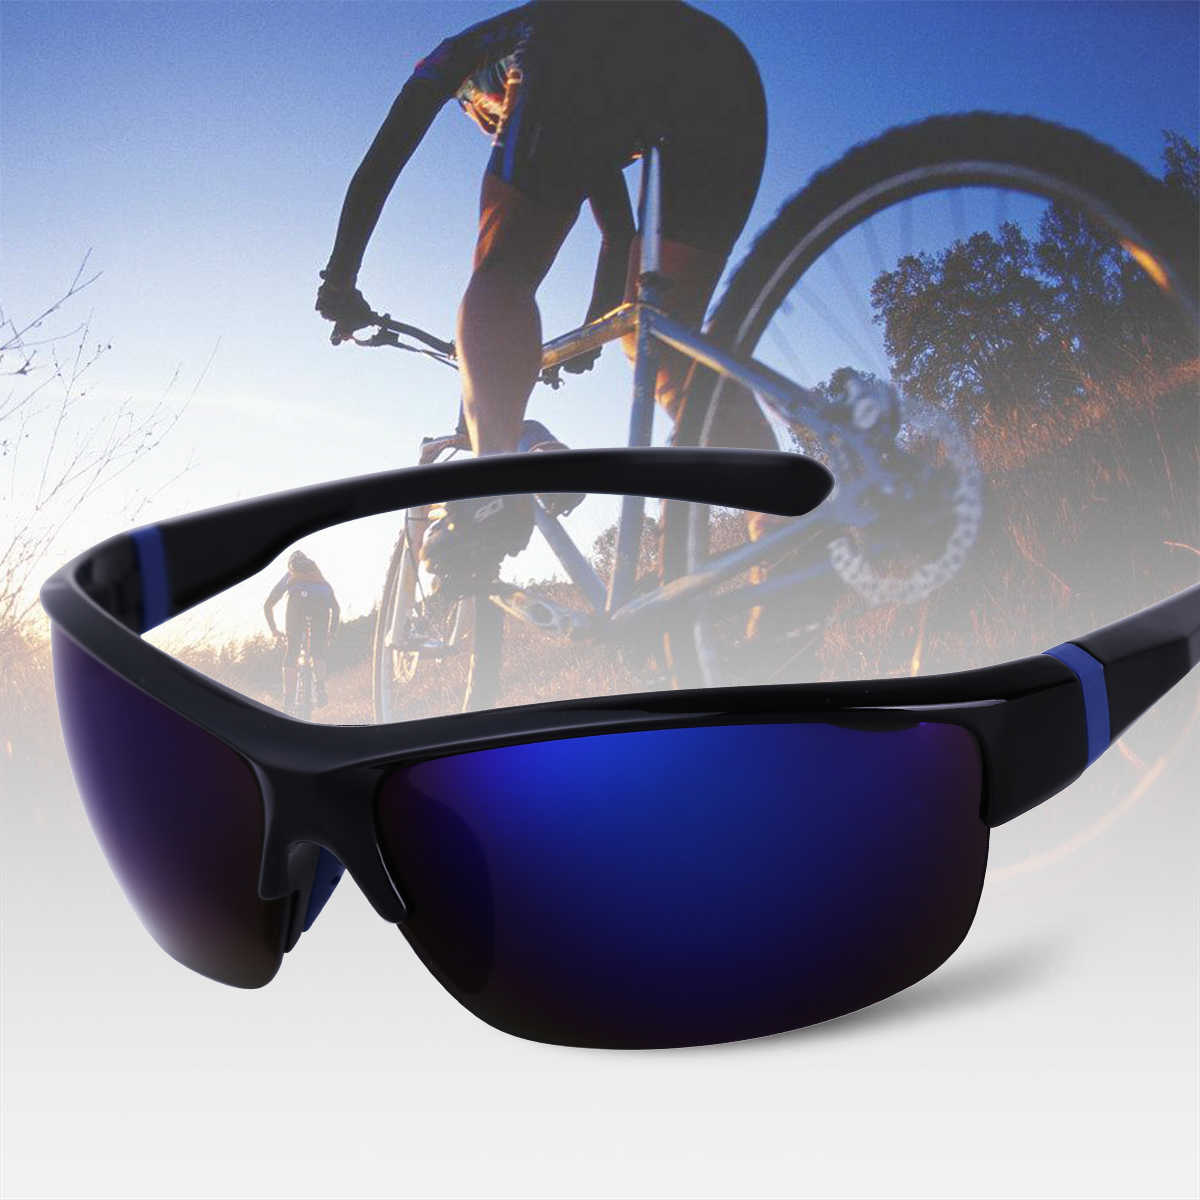 DPOIS Fashion Sunglasses Men Sport Sunglasses UV 400 Protection Golf Sun Glasses Women Driving Cycling Glasses Fishing Eyewear